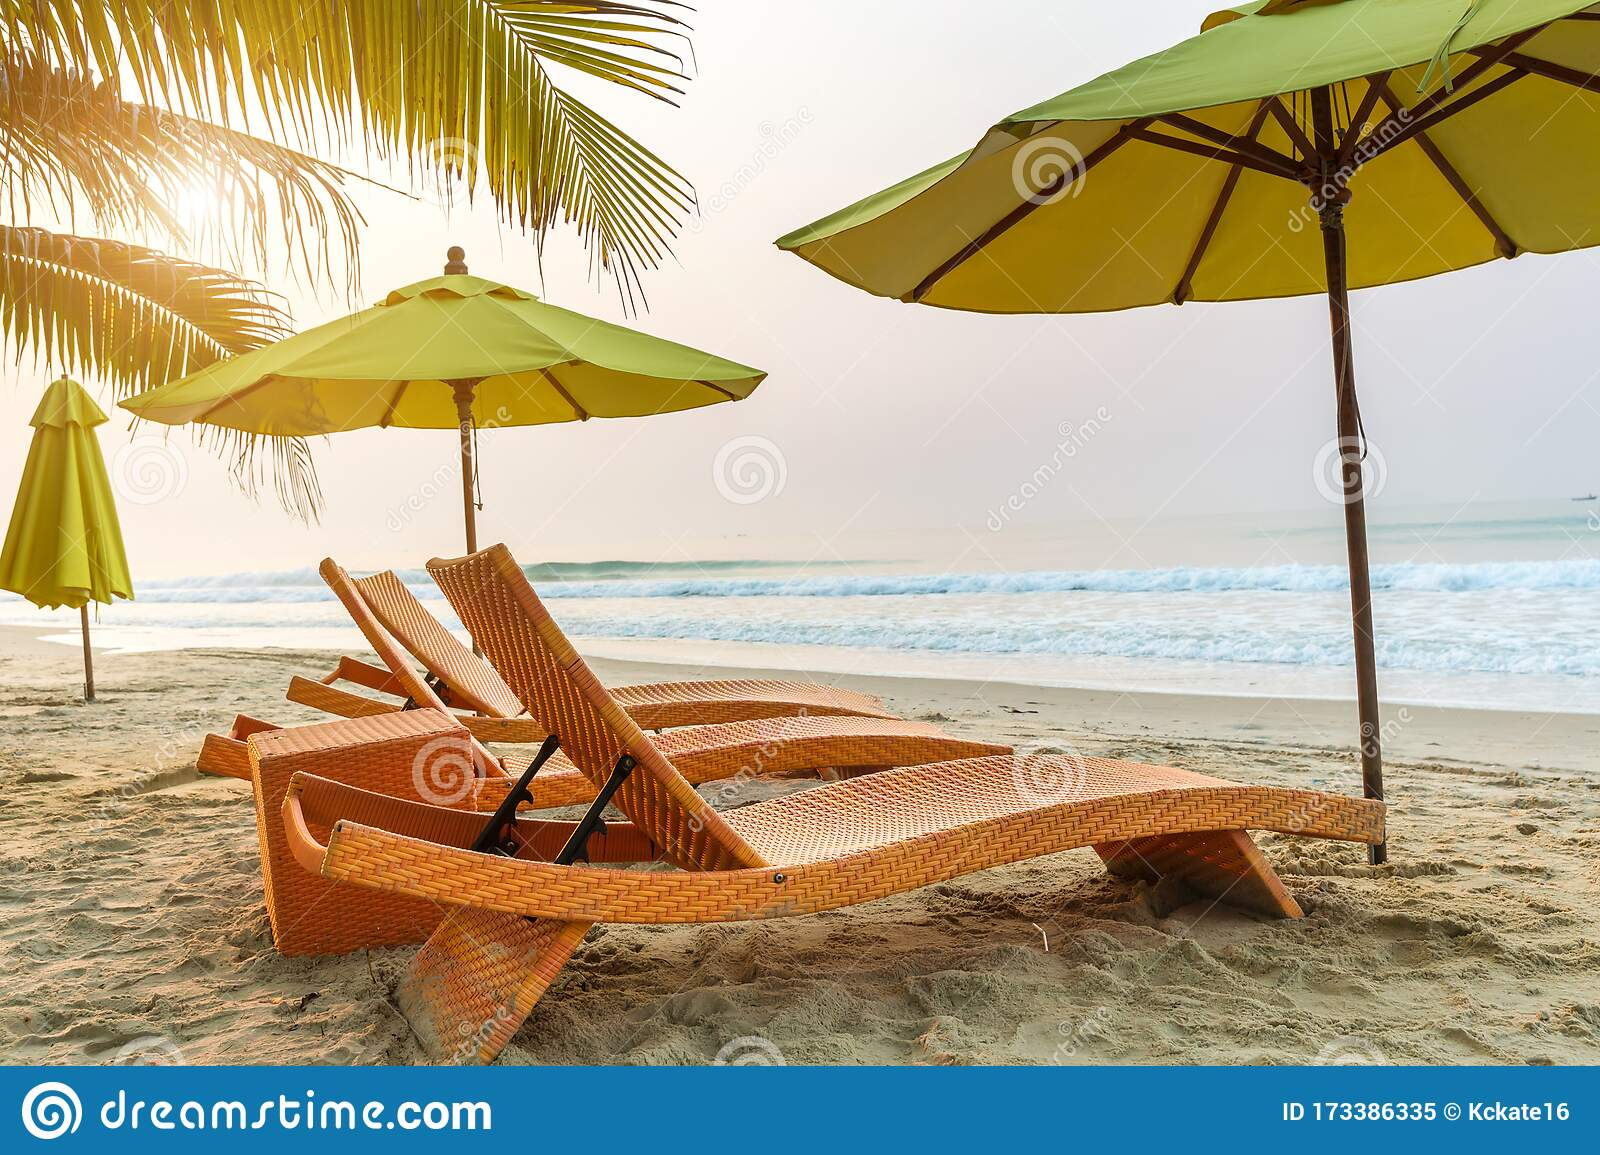 Beach Chair Under The Big Umbrella And Was On The Beach Beautiful Beach Chairs On The Sandy Beach Near The Sea Stock Image Image Of Relaxation Cruise 173386335